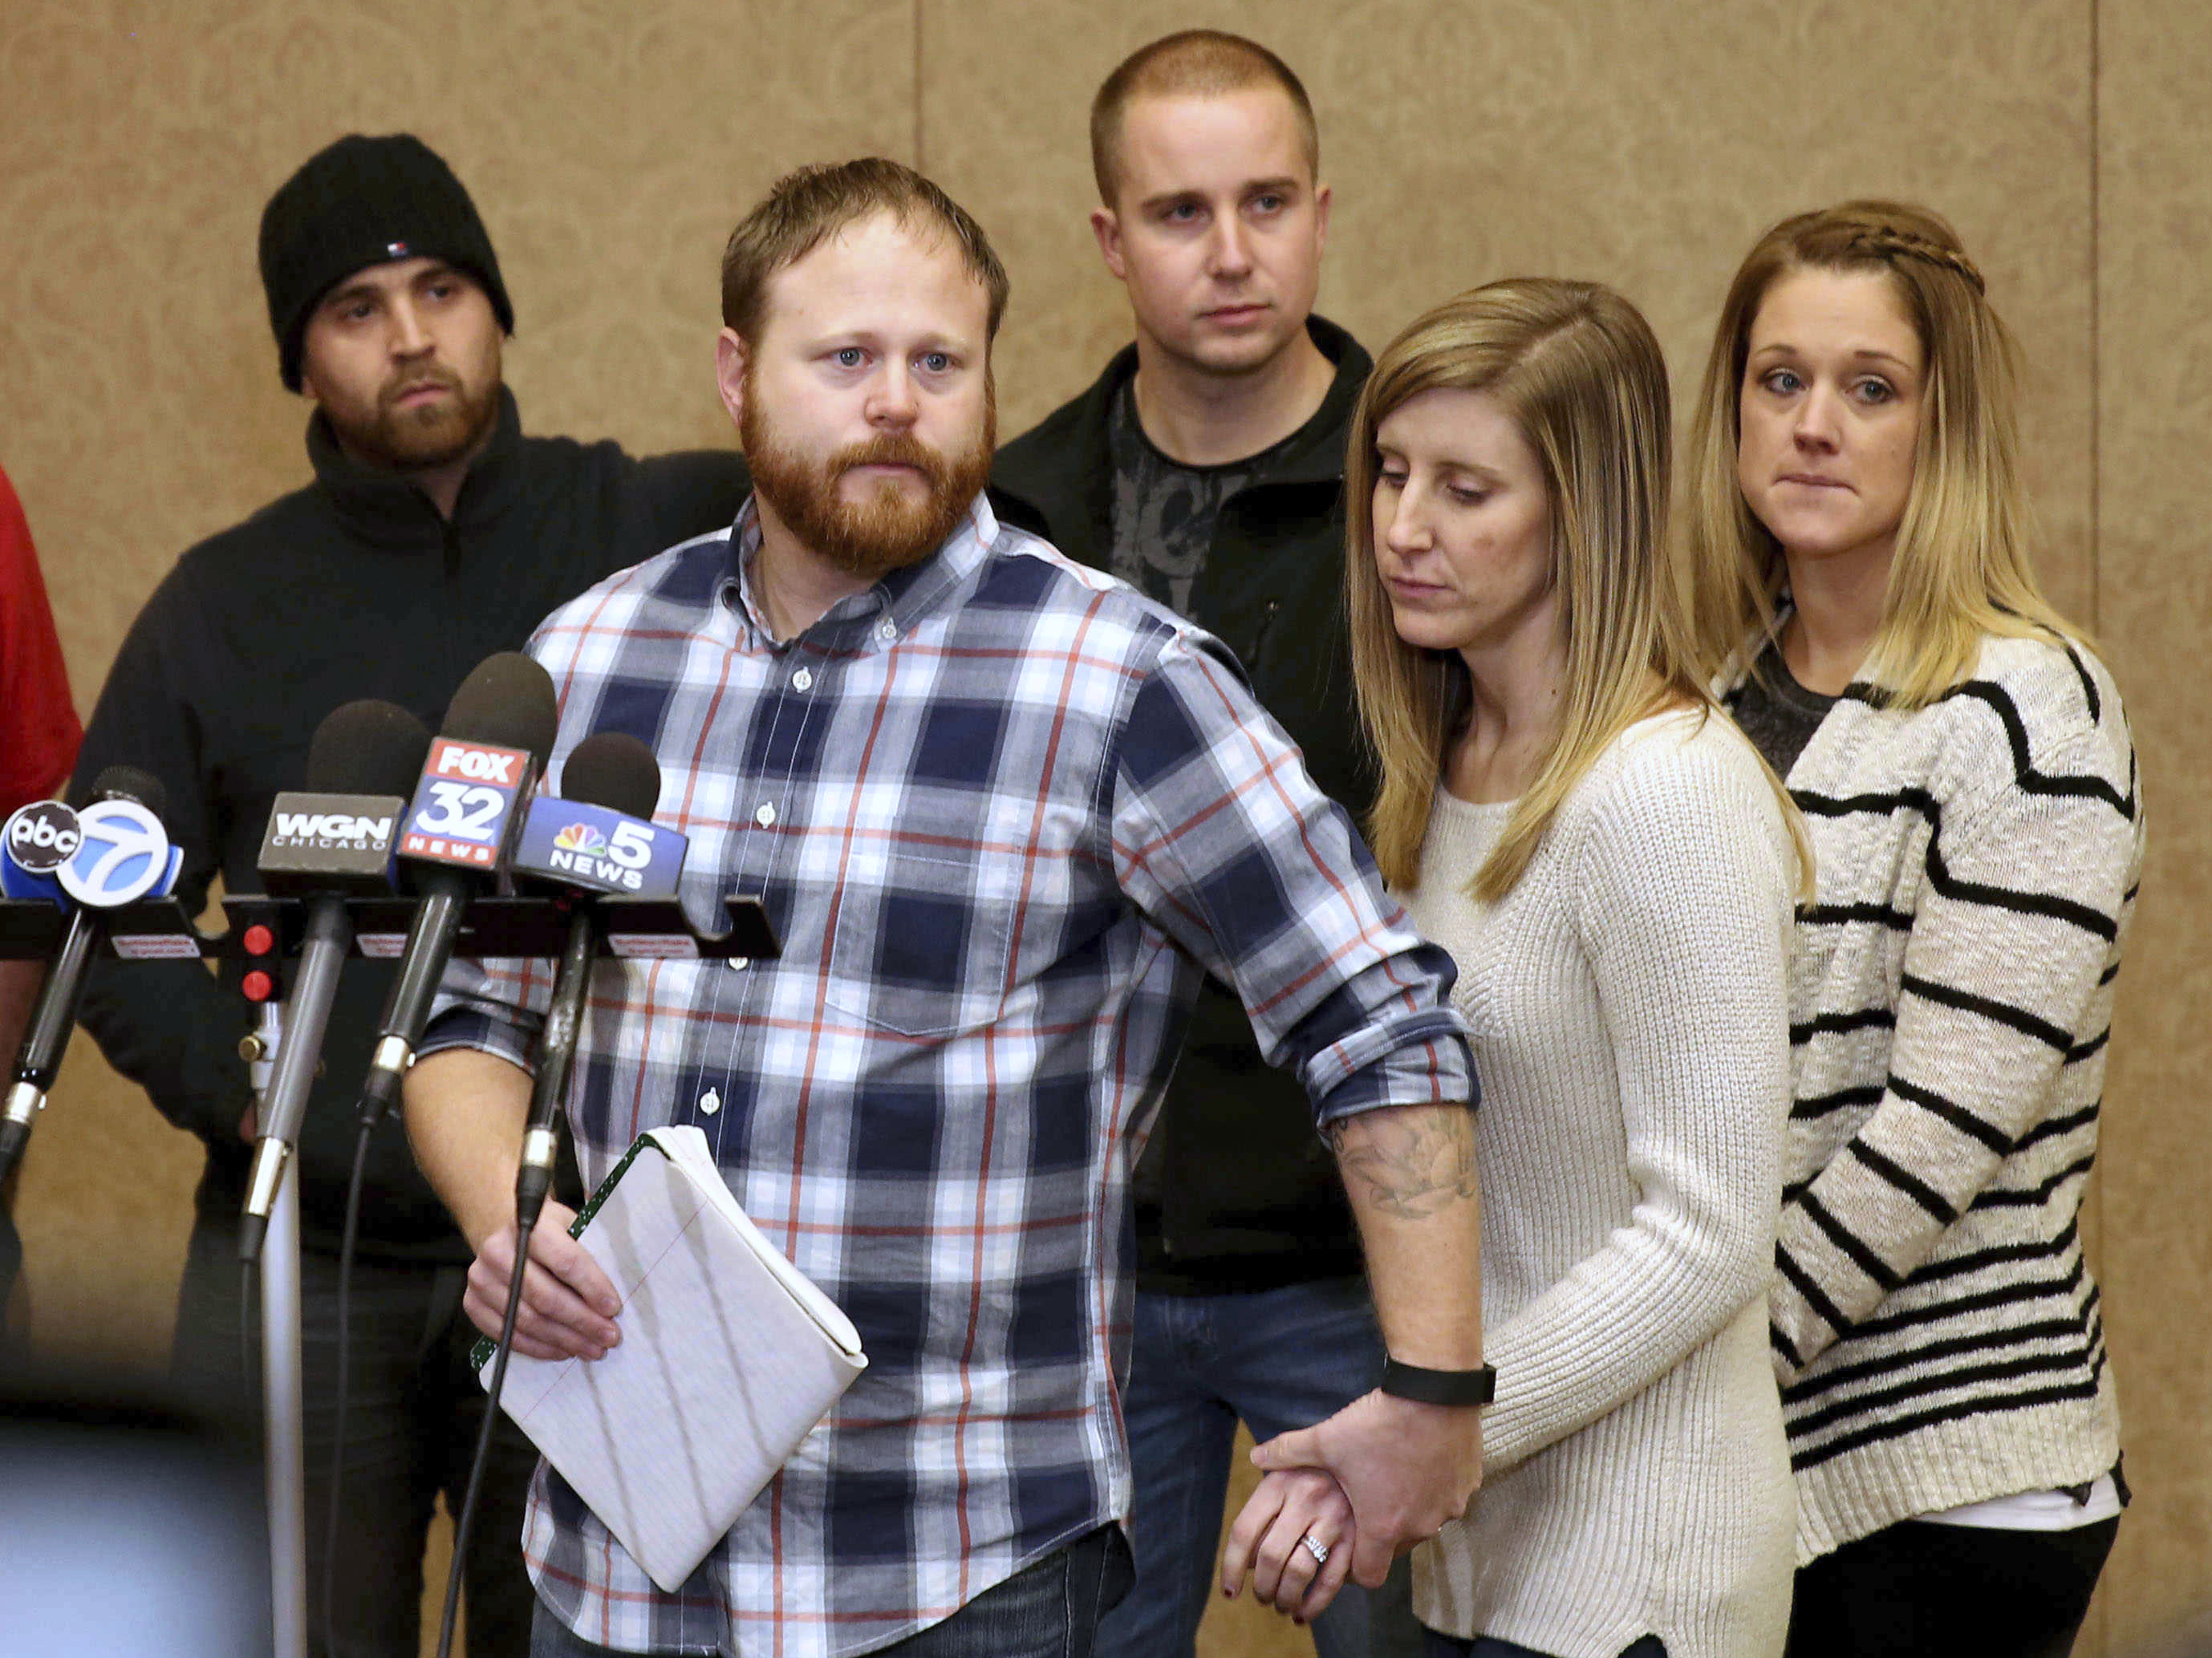 Family spokesman David Boyd and others hold a news conference on Jan. 5, 2017. (Patrick Kunzer/Daily Herald via AP)